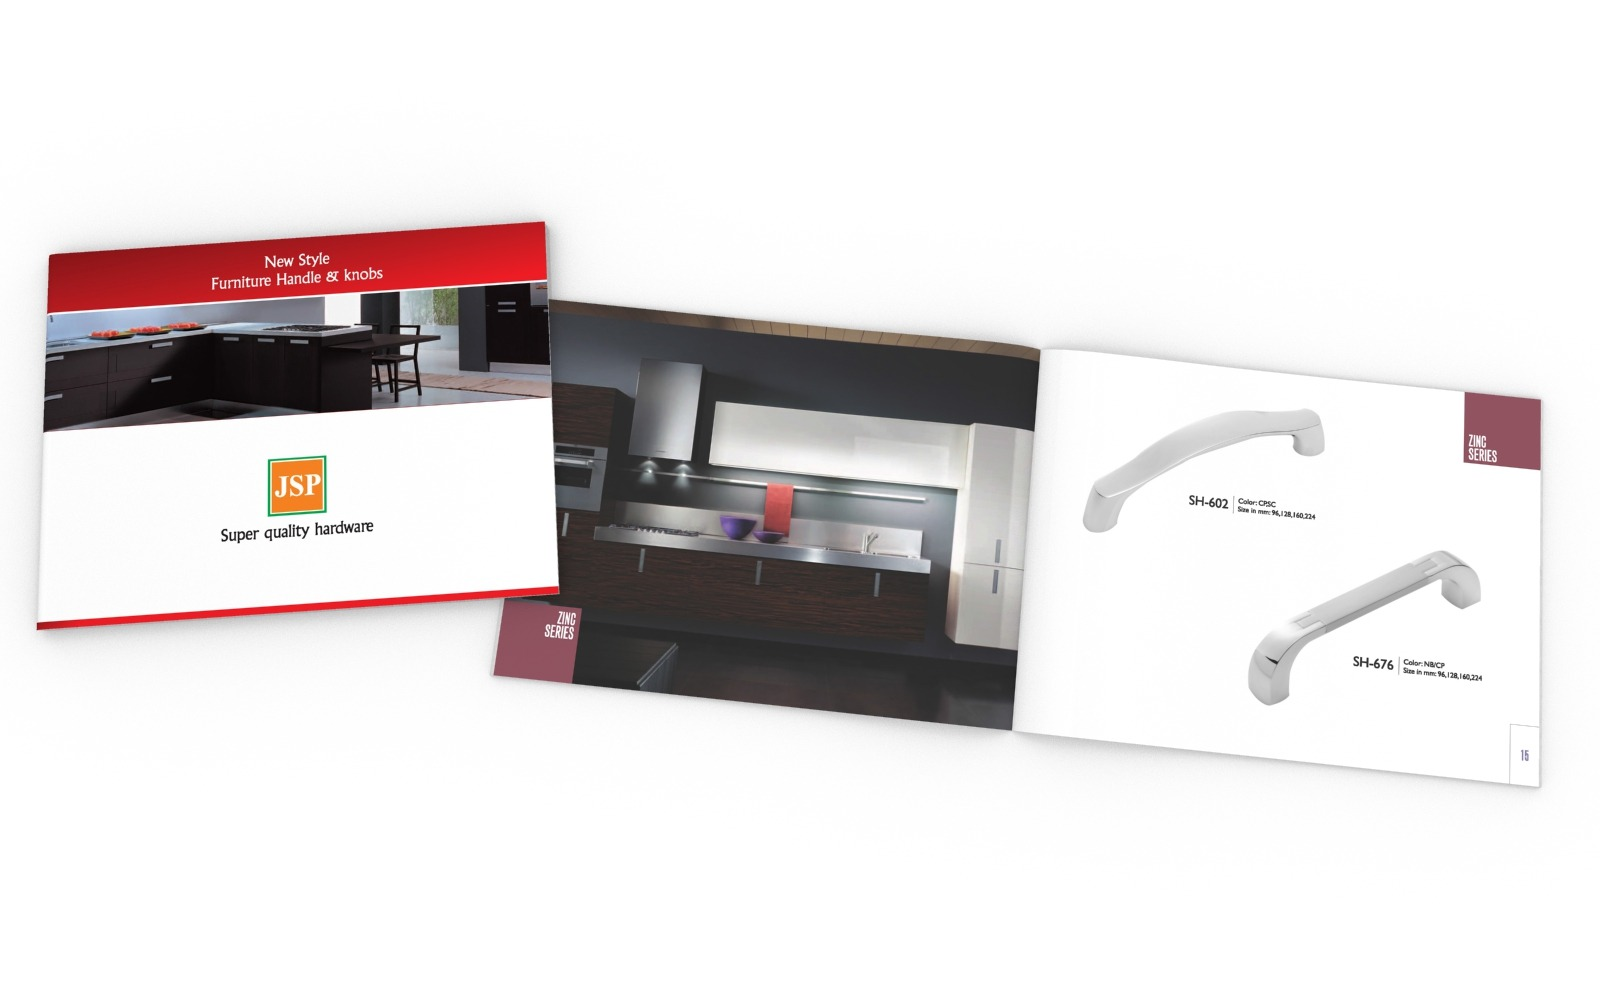 Brochure/ Catalog design for JSP furniture handles and knobs, a Hardware manufacturer